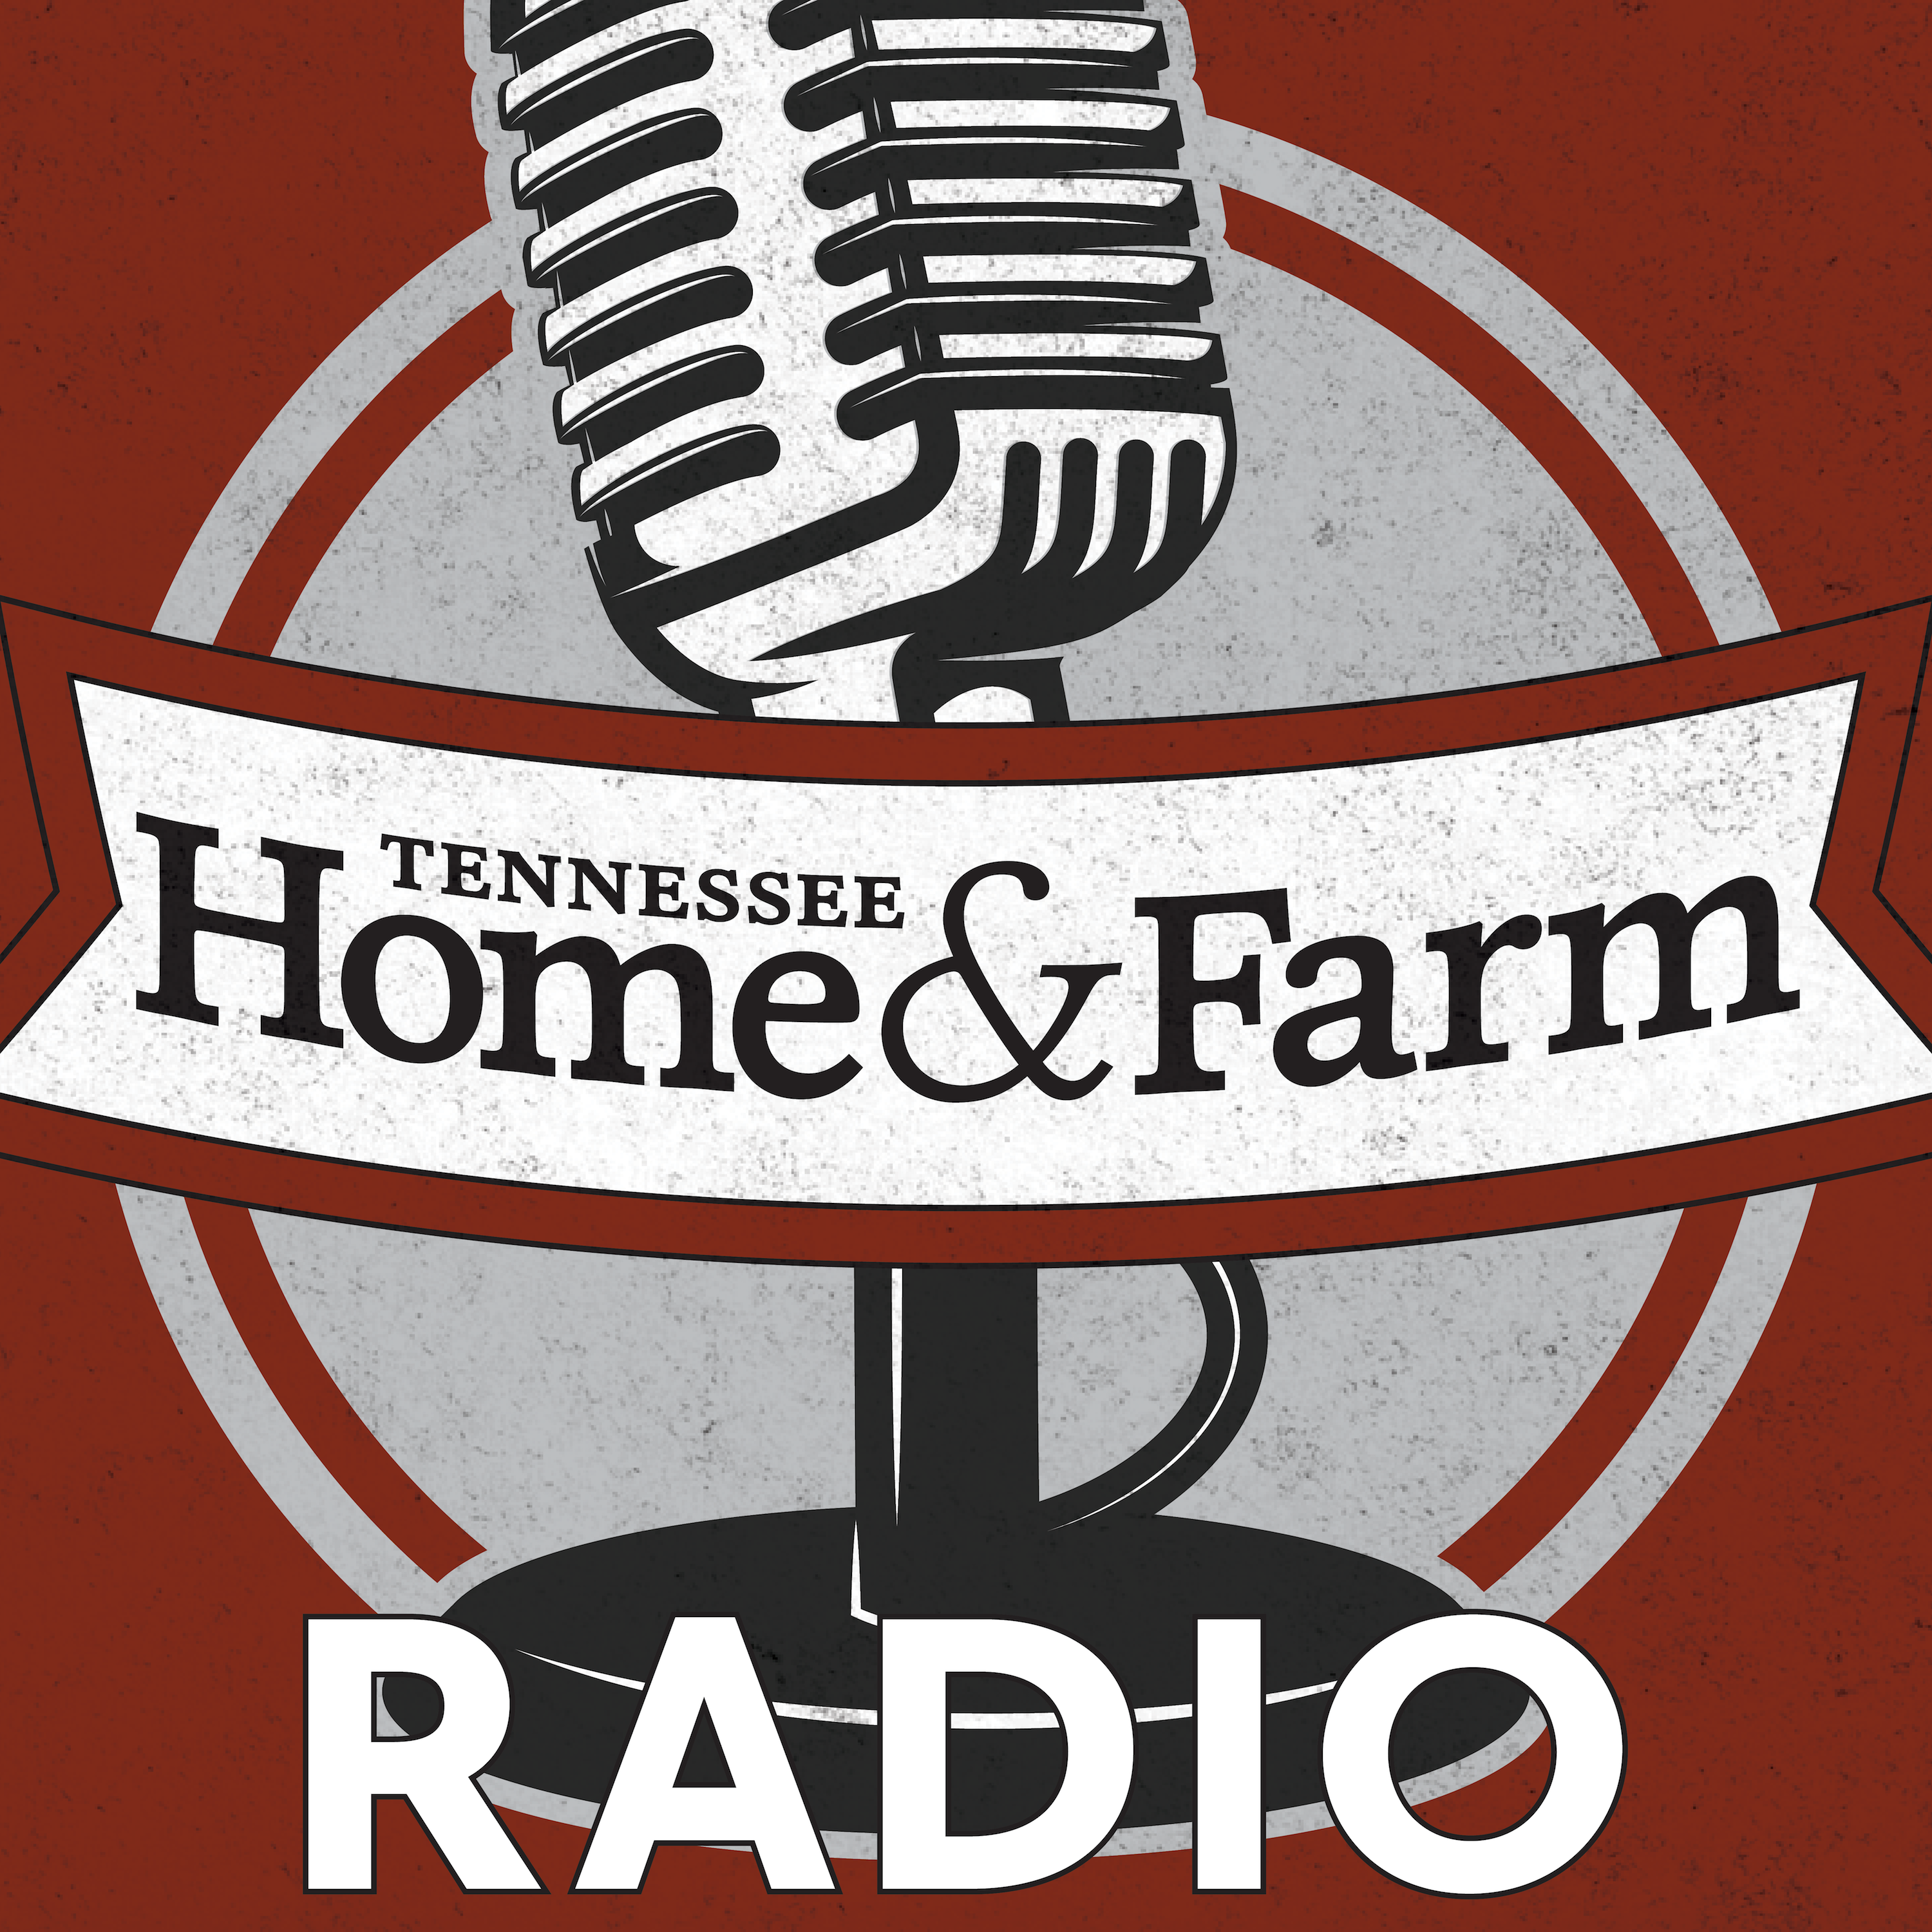 Tennessee Home & Farm Radio